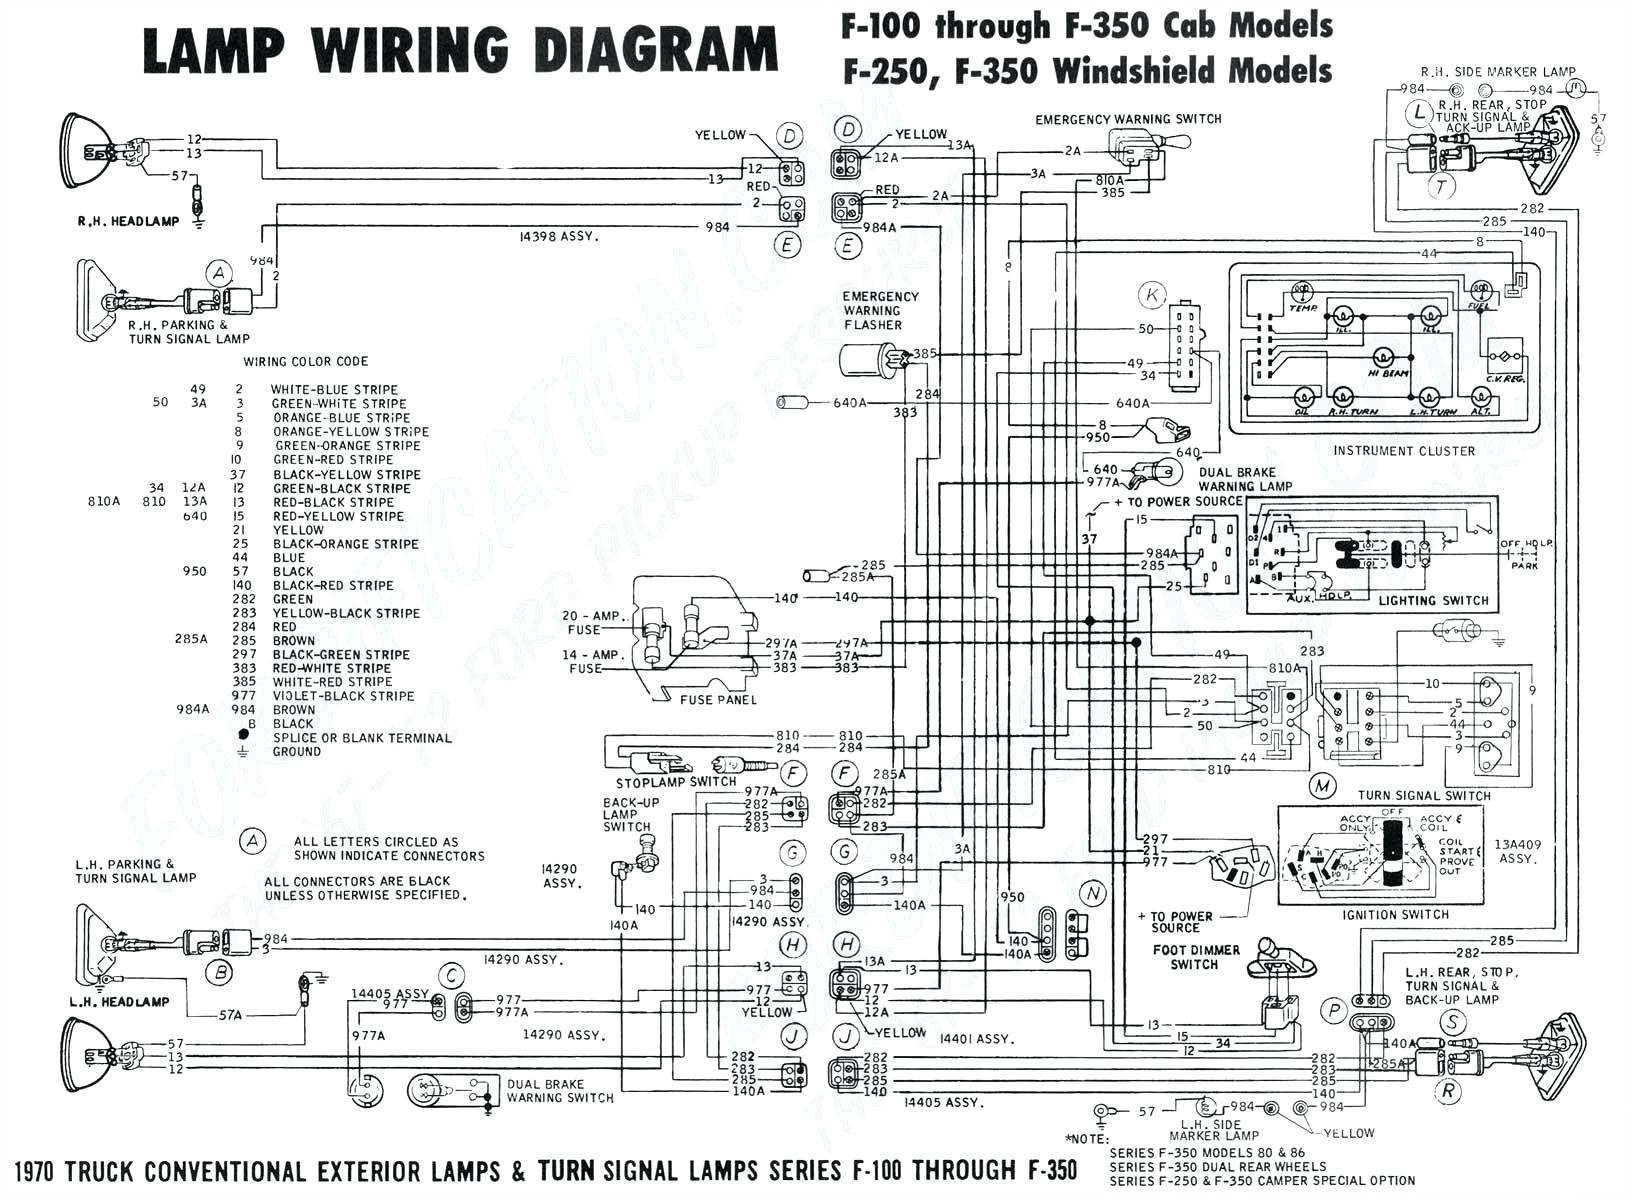 2012 ford focus wiring diagram 35 2012 ford focus wiring diagram pdf wiring diagram list 2012 ford focus horn wiring diagram 35 2012 ford focus wiring diagram pdf